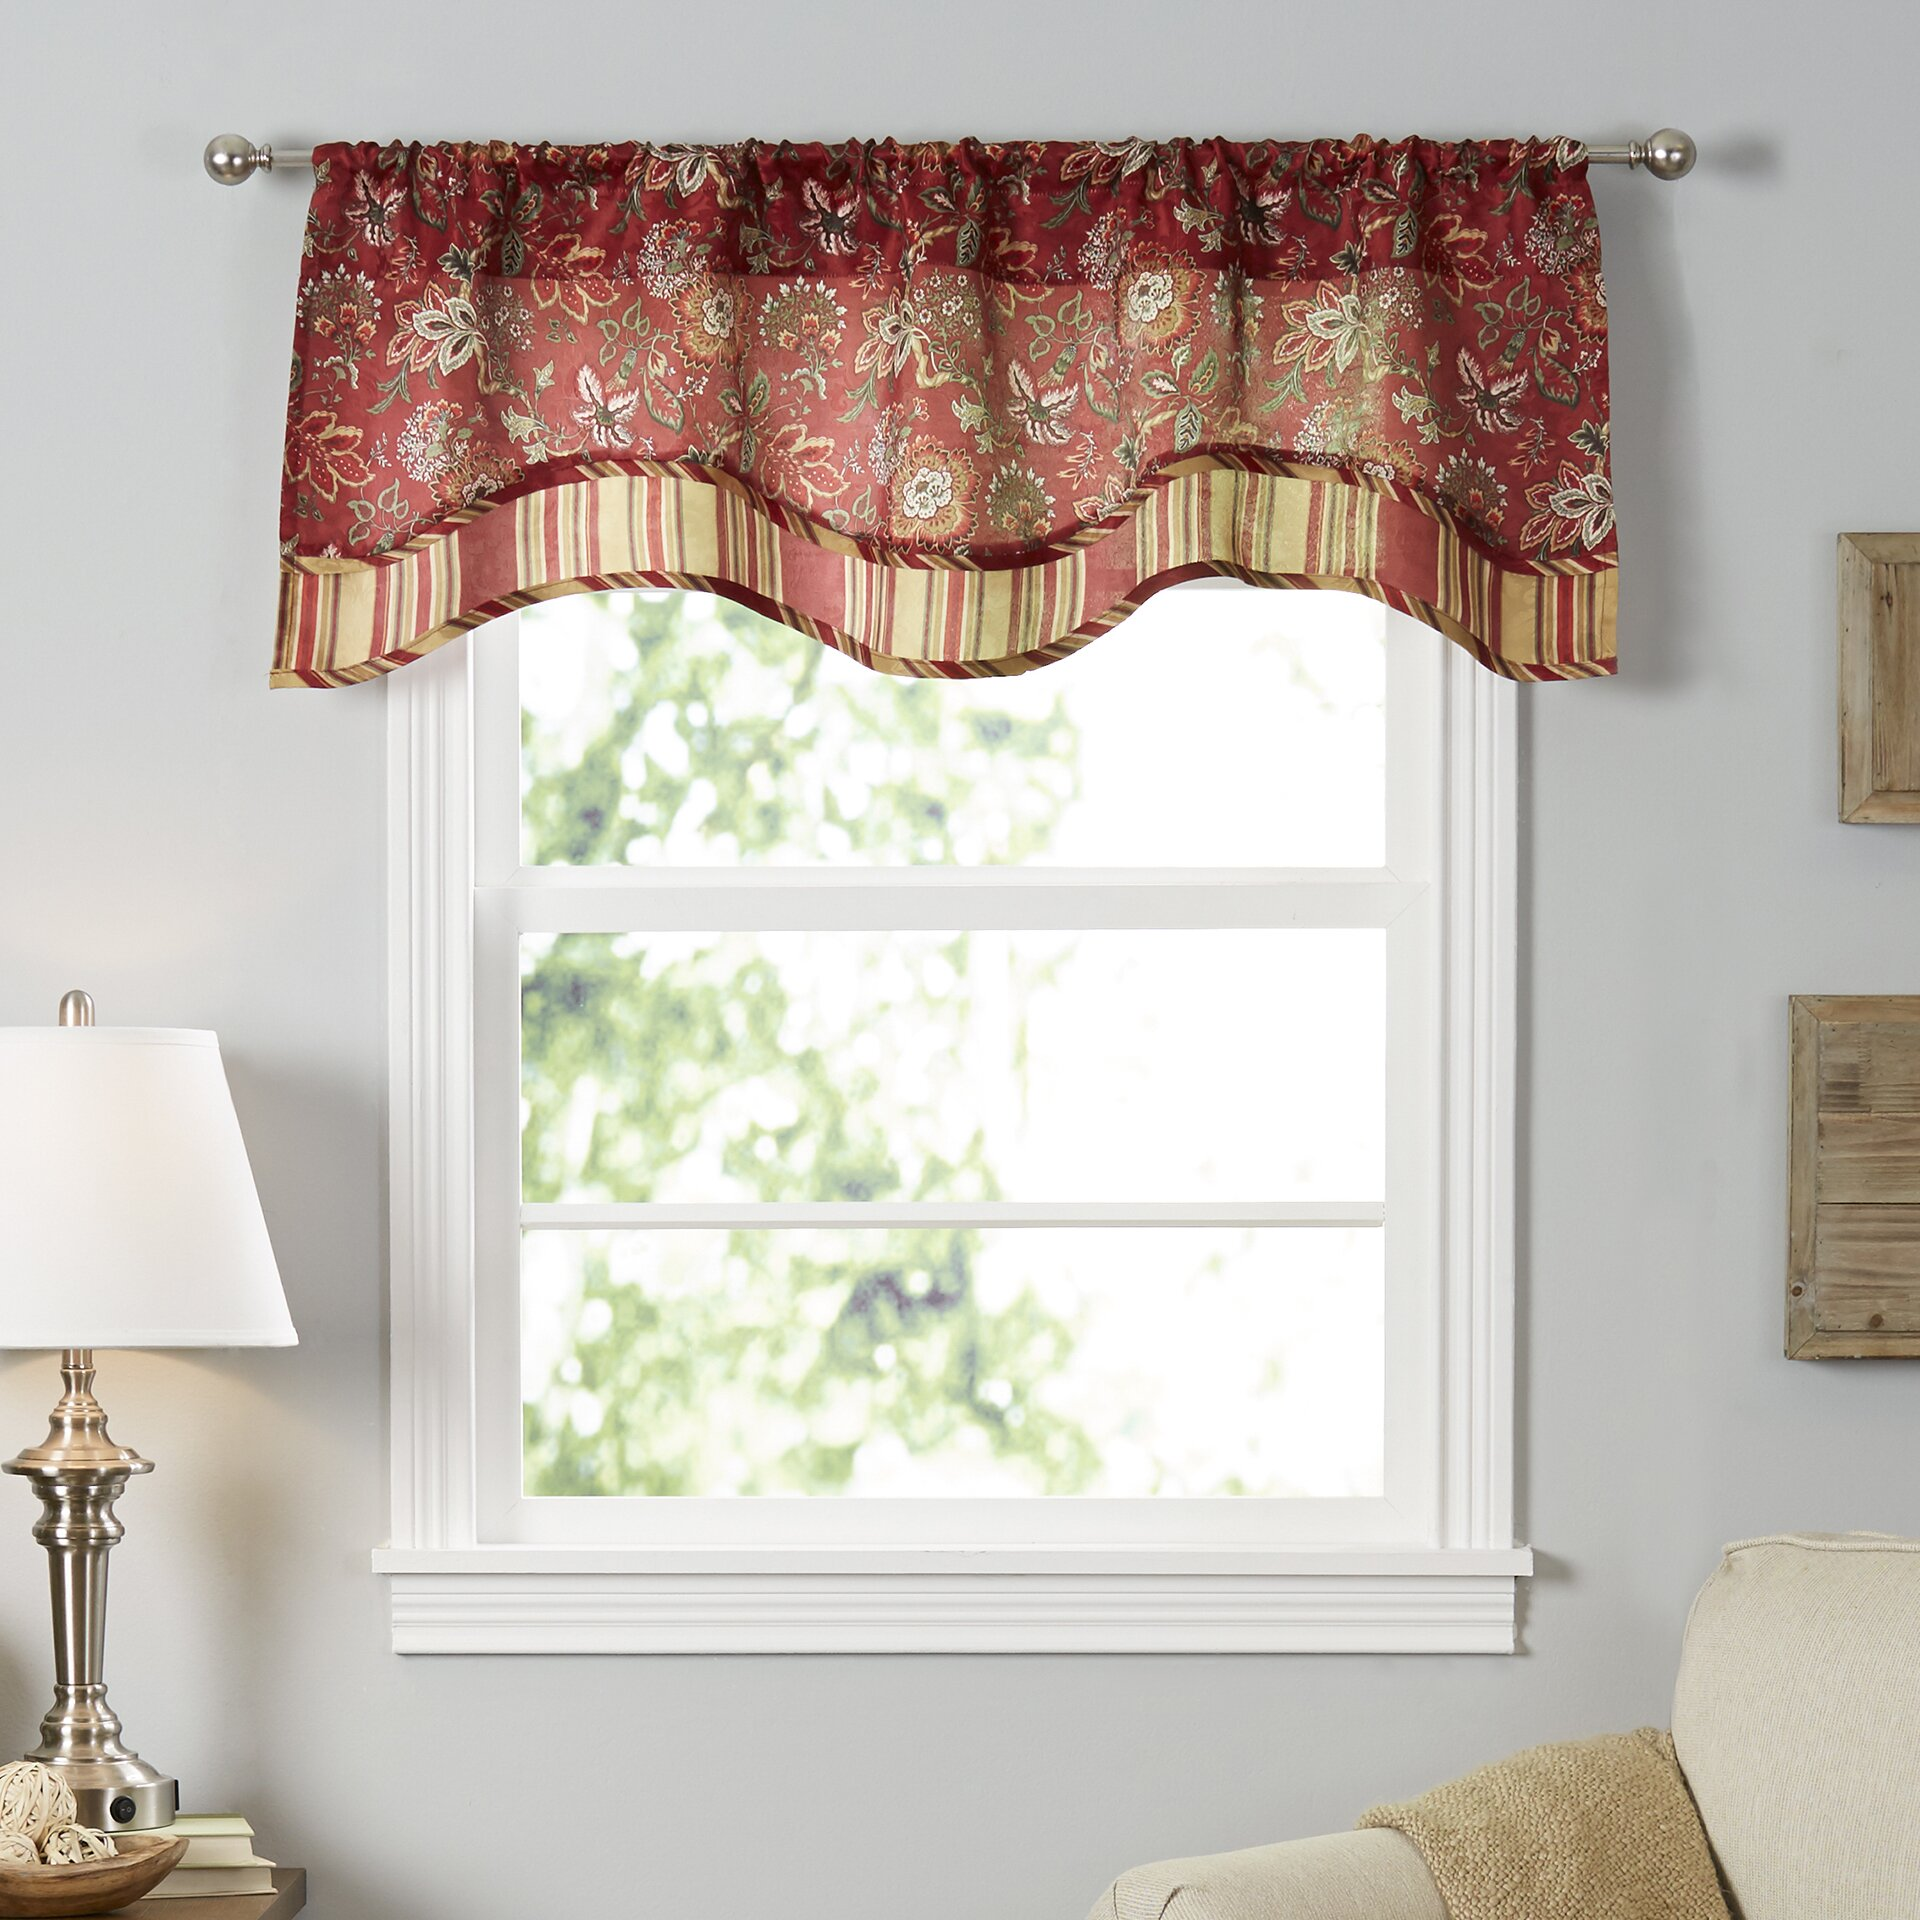 "Traditions By Waverly Navarra Floral 52"" Curtain Valance"